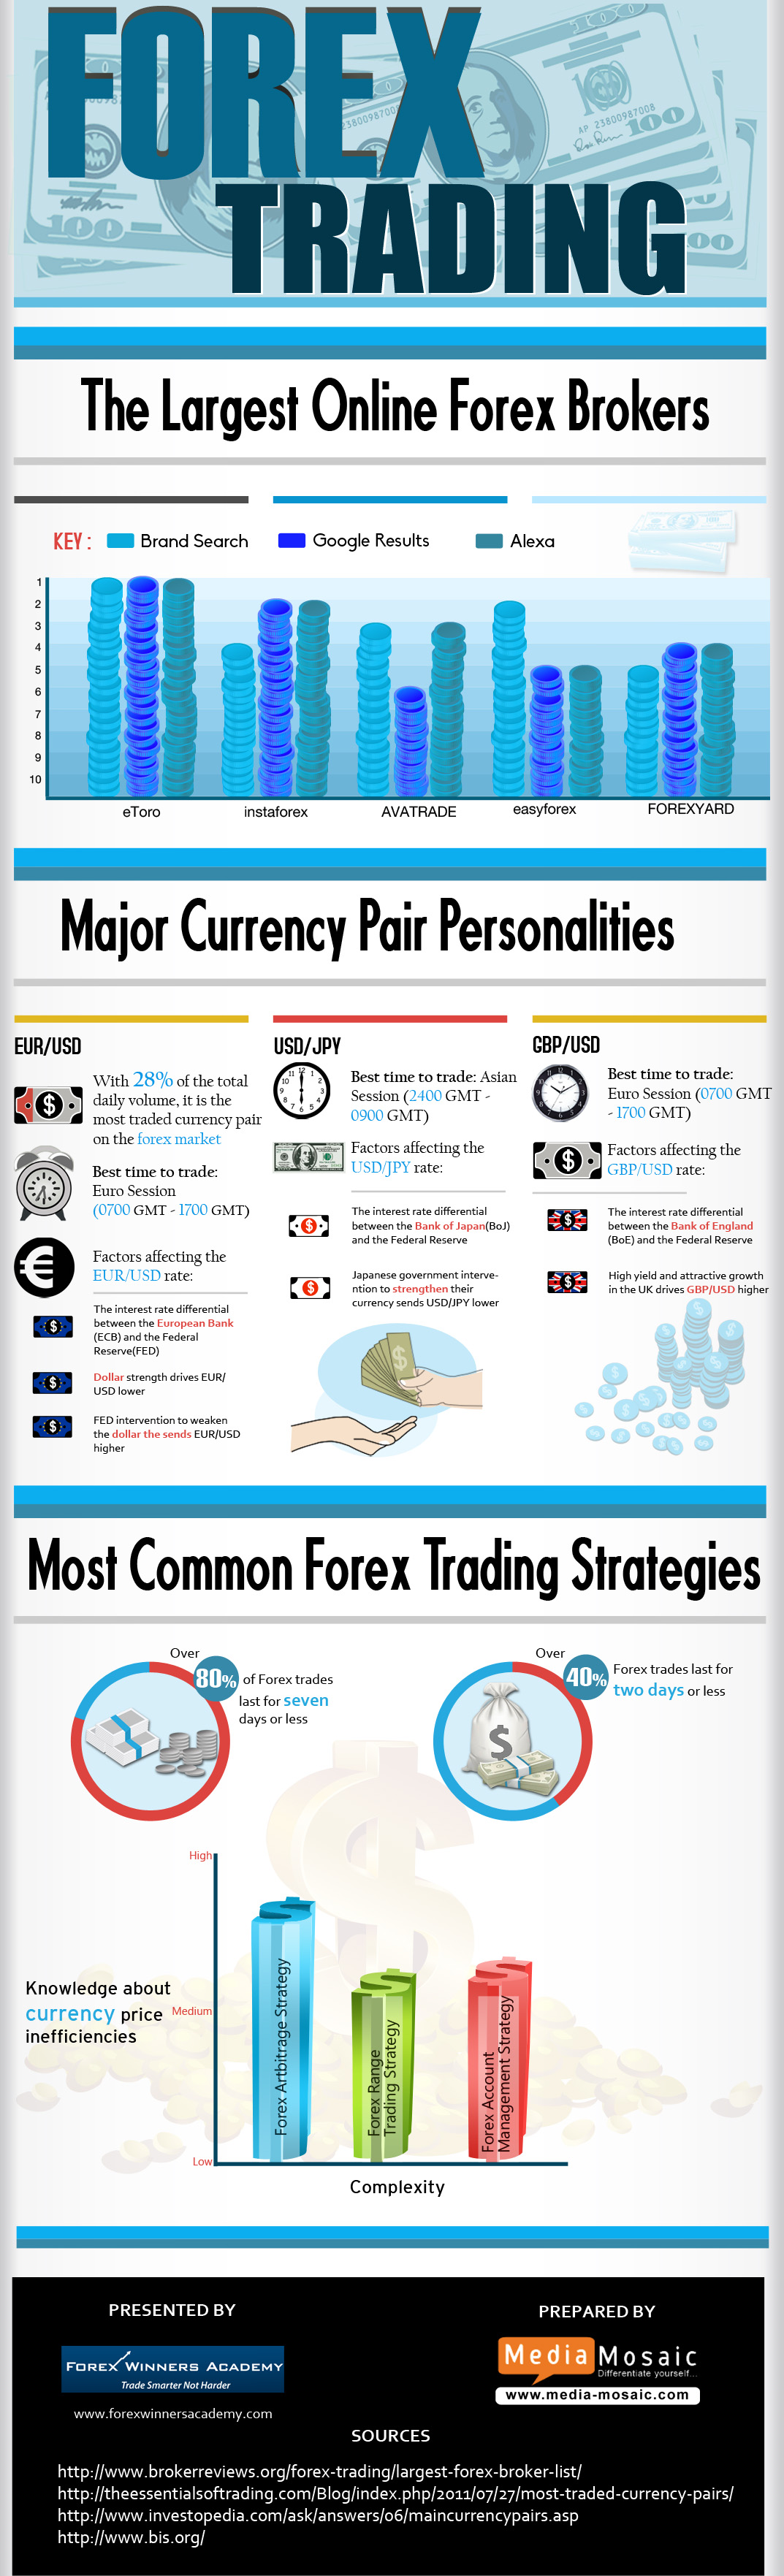 Volumen De Forex Trading Brokers